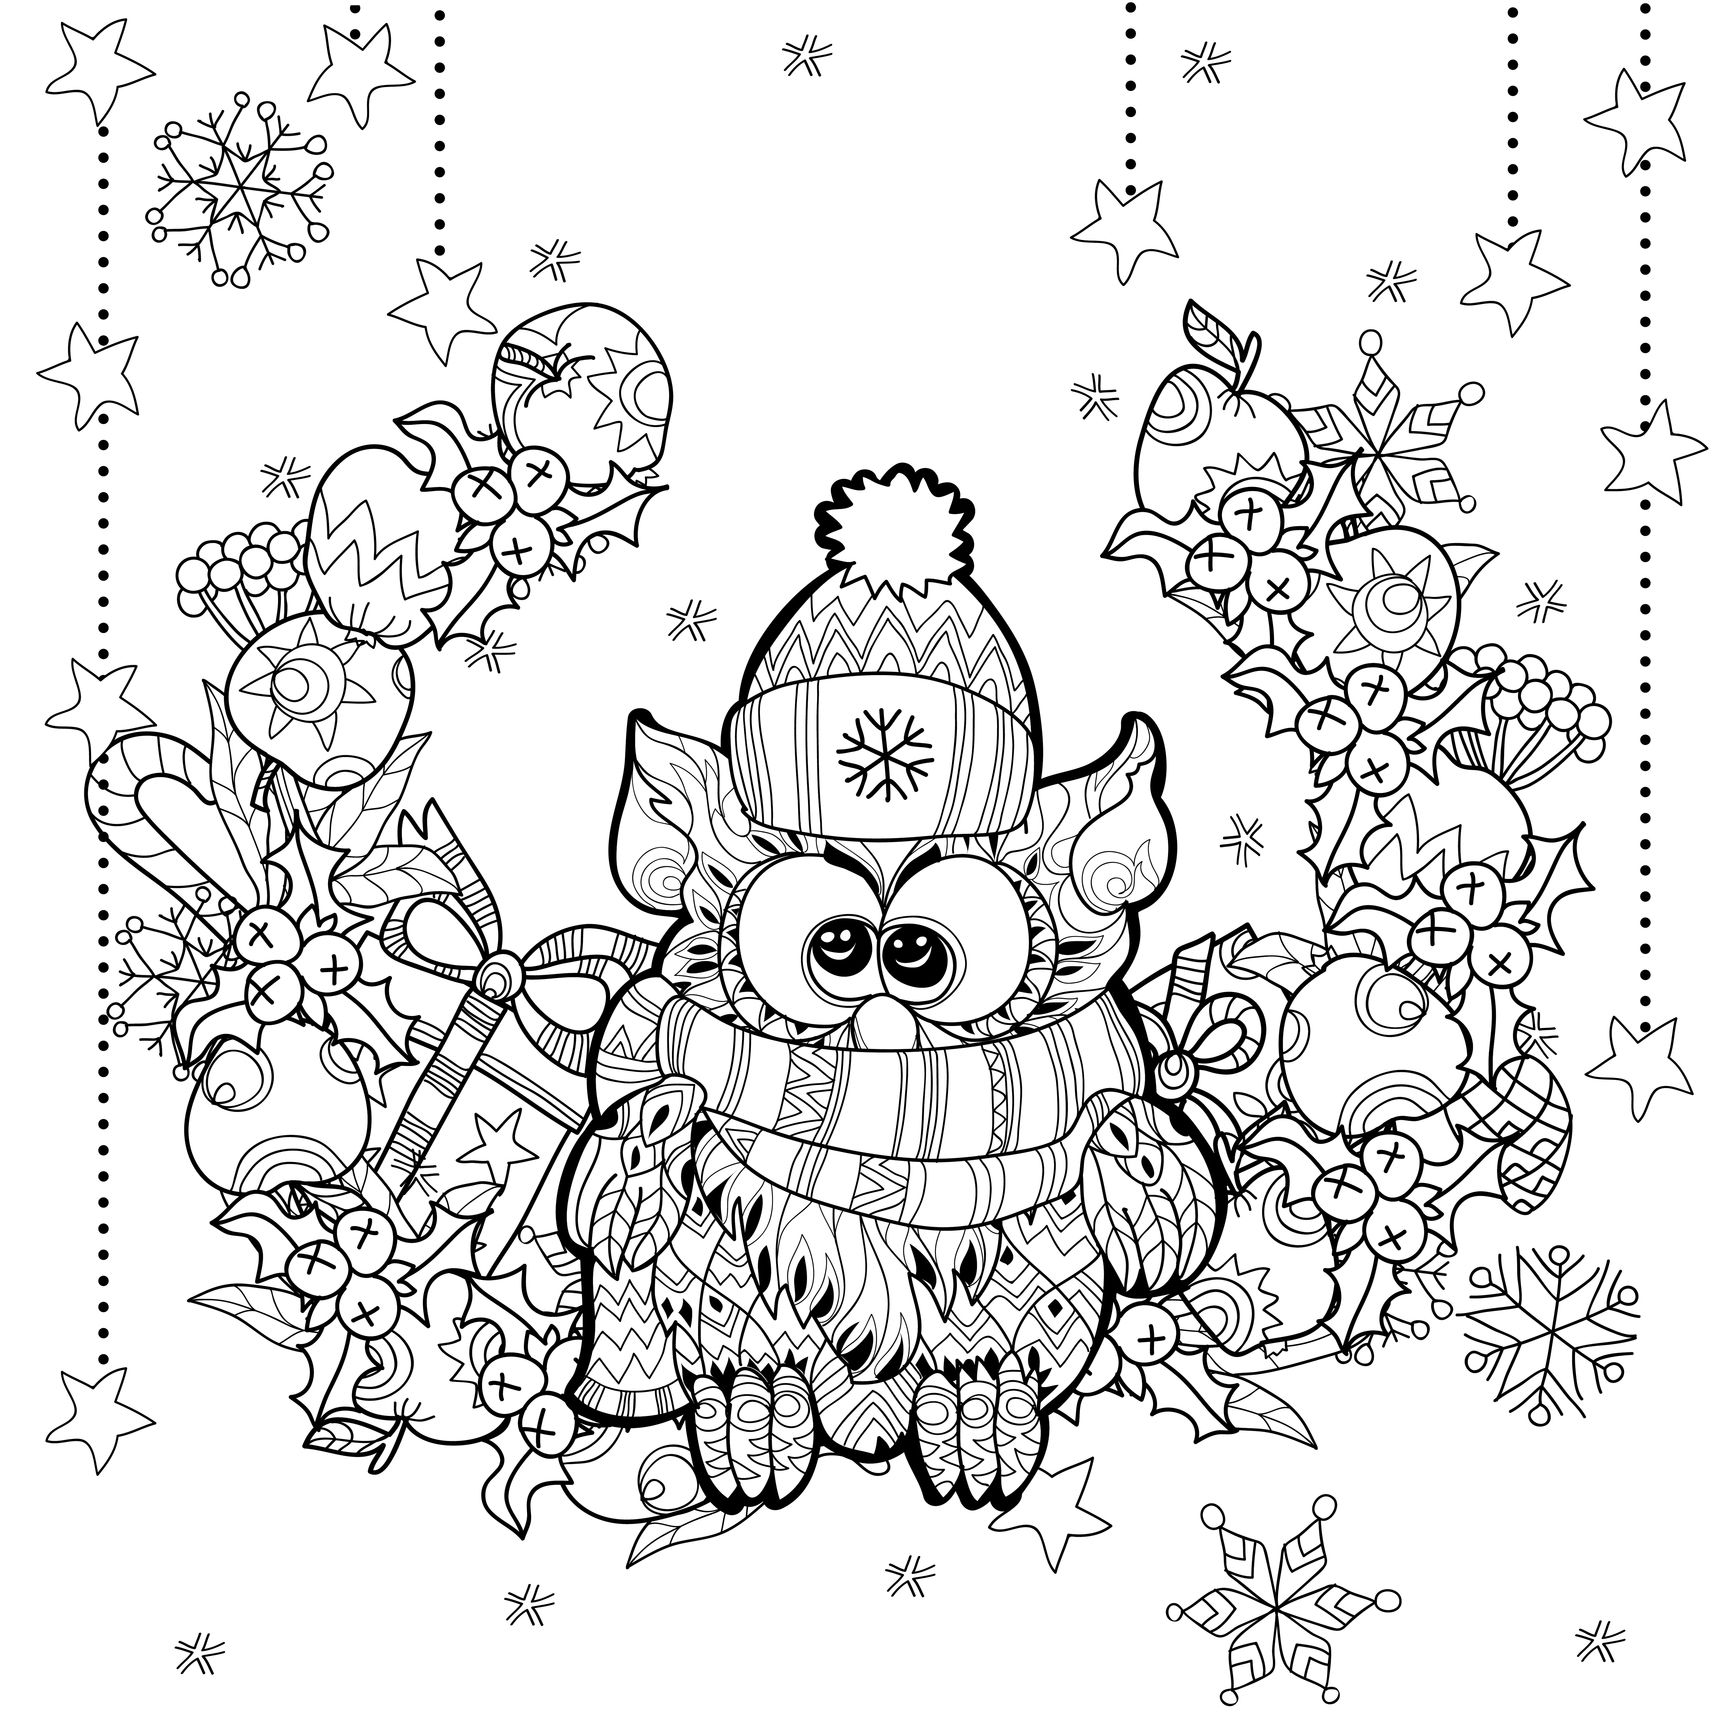 Coloring Zentangle Christmas Owl By Irina Yazeva From The Gallery Events Owl Coloring Pages Printable Christmas Coloring Pages Santa Coloring Pages